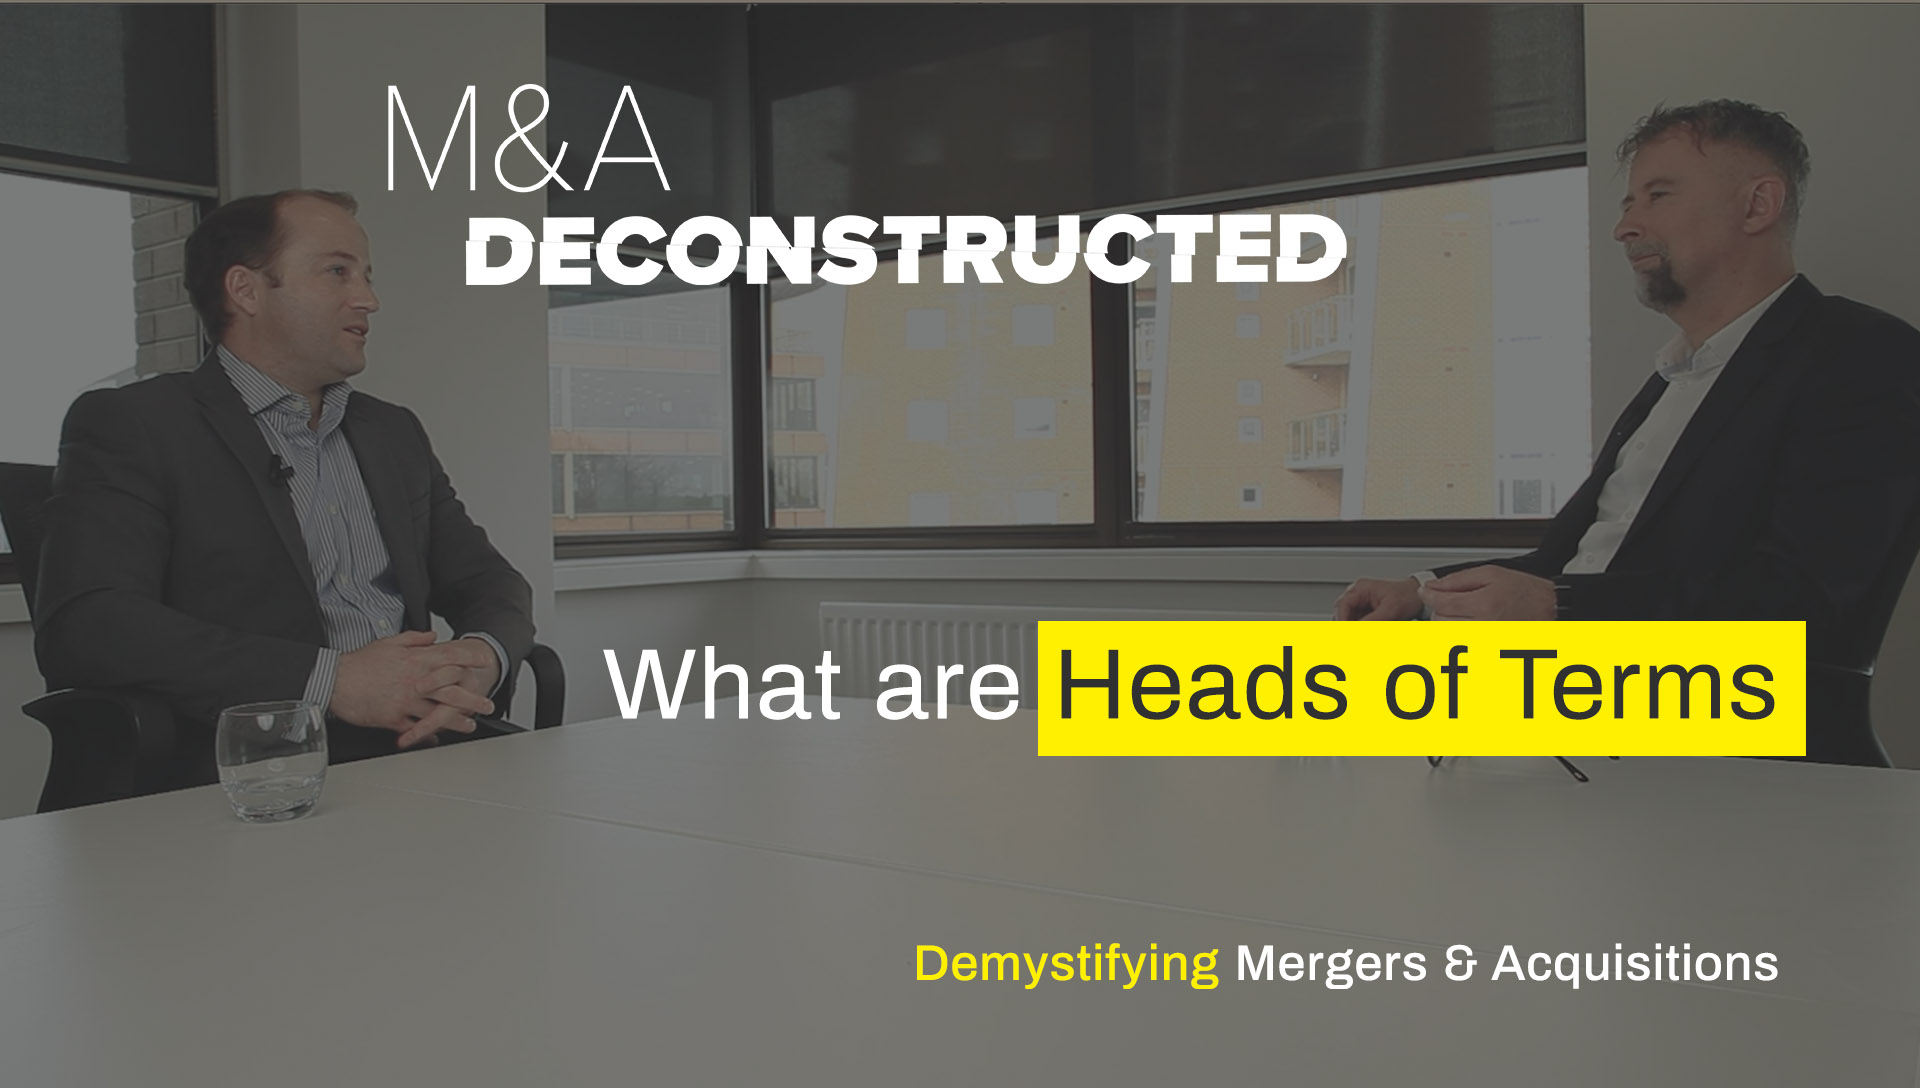 Introducing M&A Decontructed - What are Heads of Terms